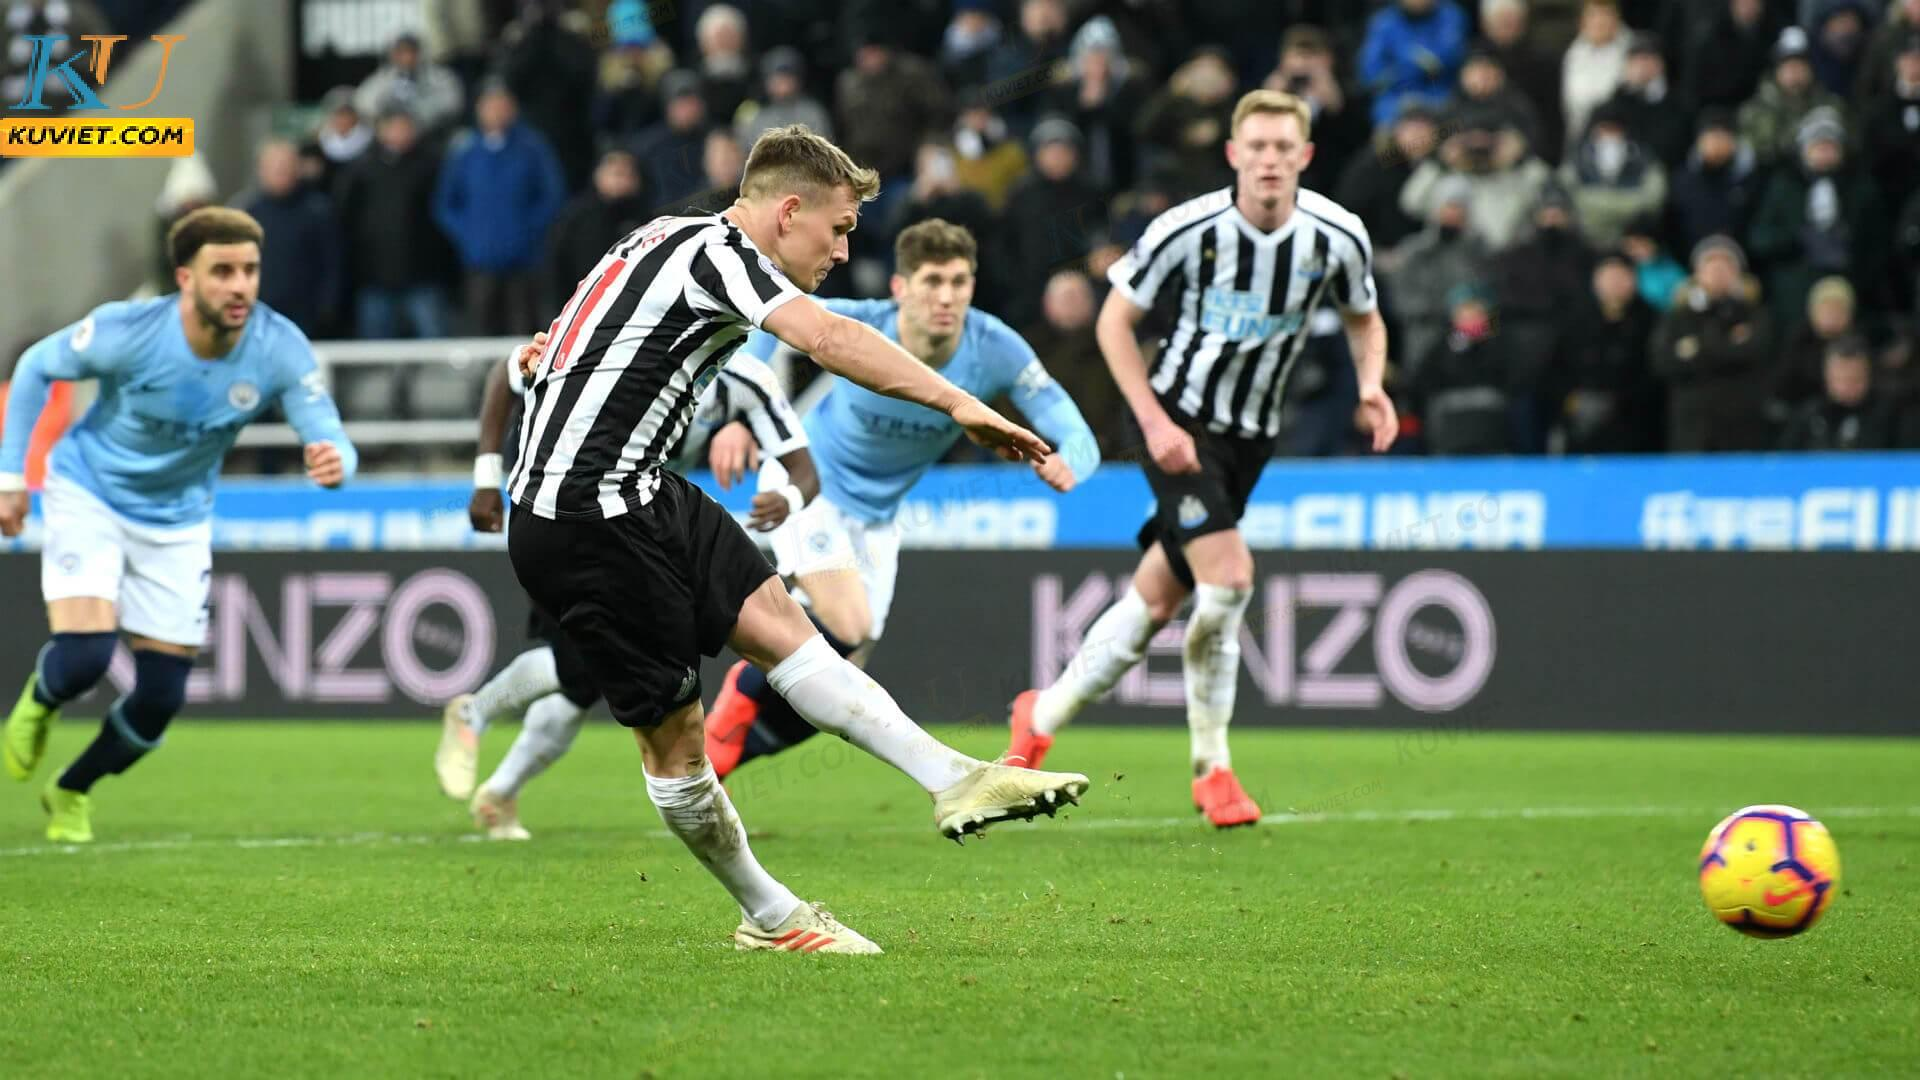 Newcastle-United-vs-Manchester-City-0h30-ngay-29-06-2020